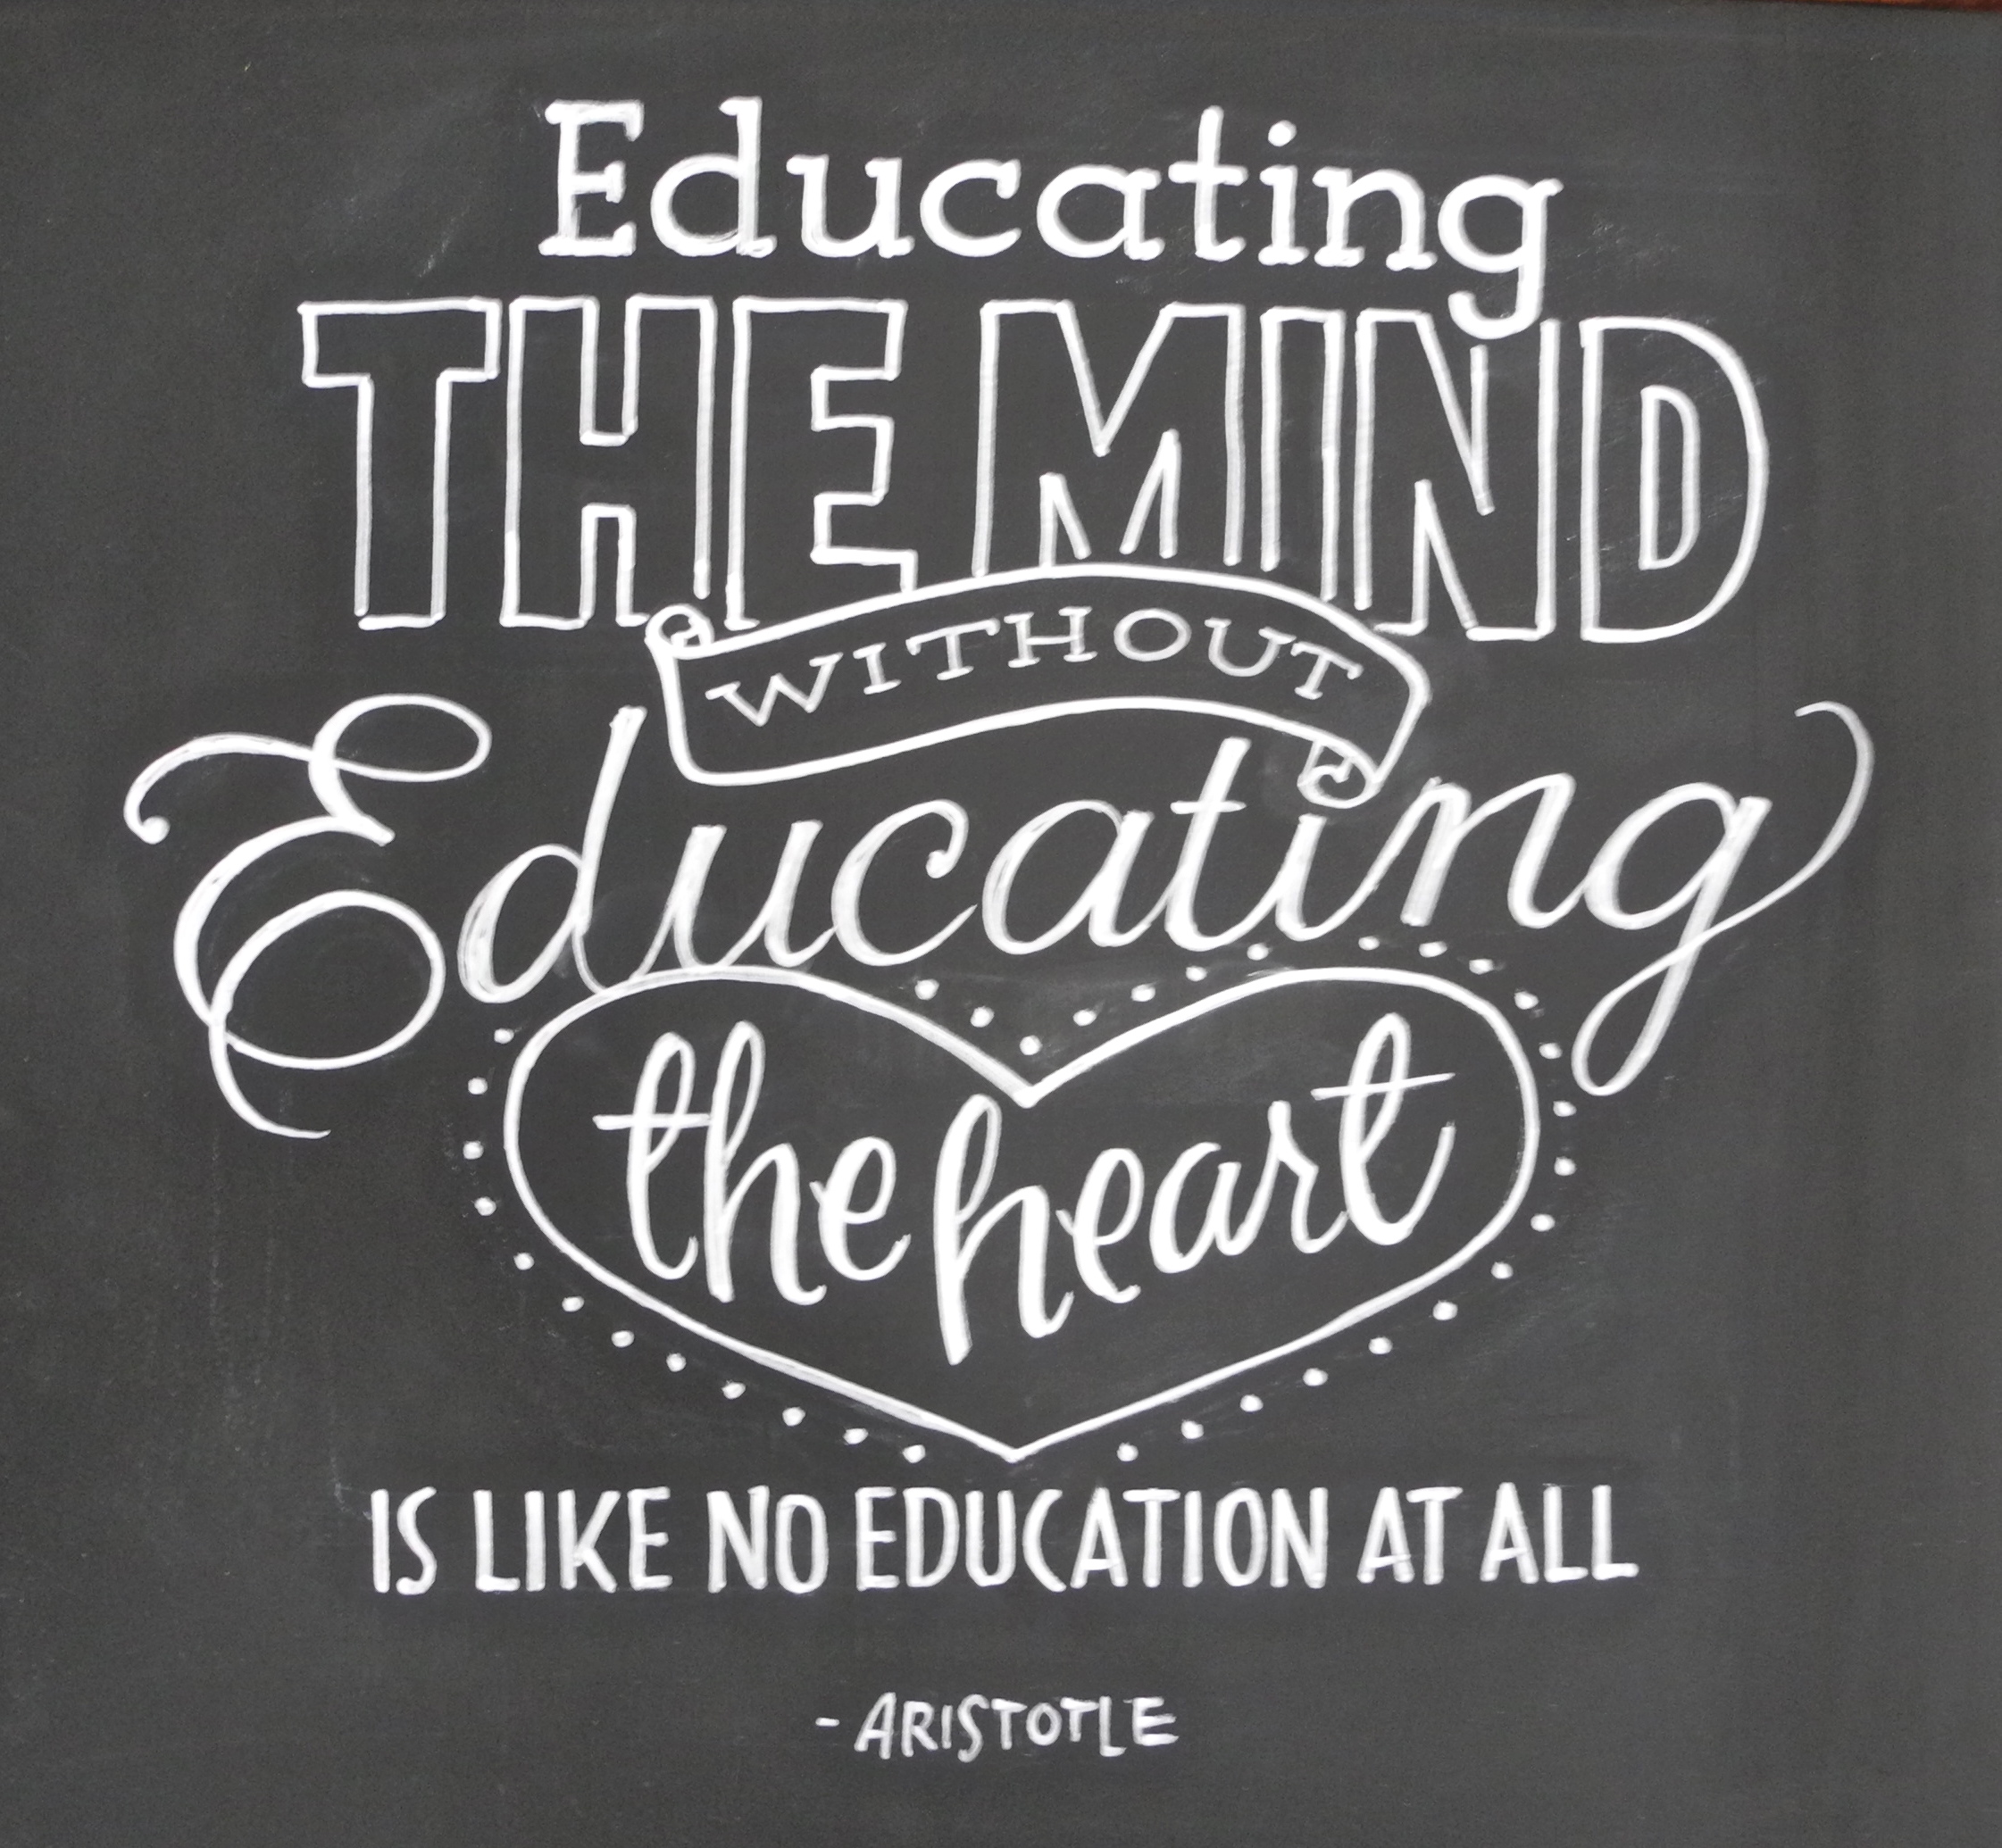 Aristotle On Education Quotes. QuotesGram